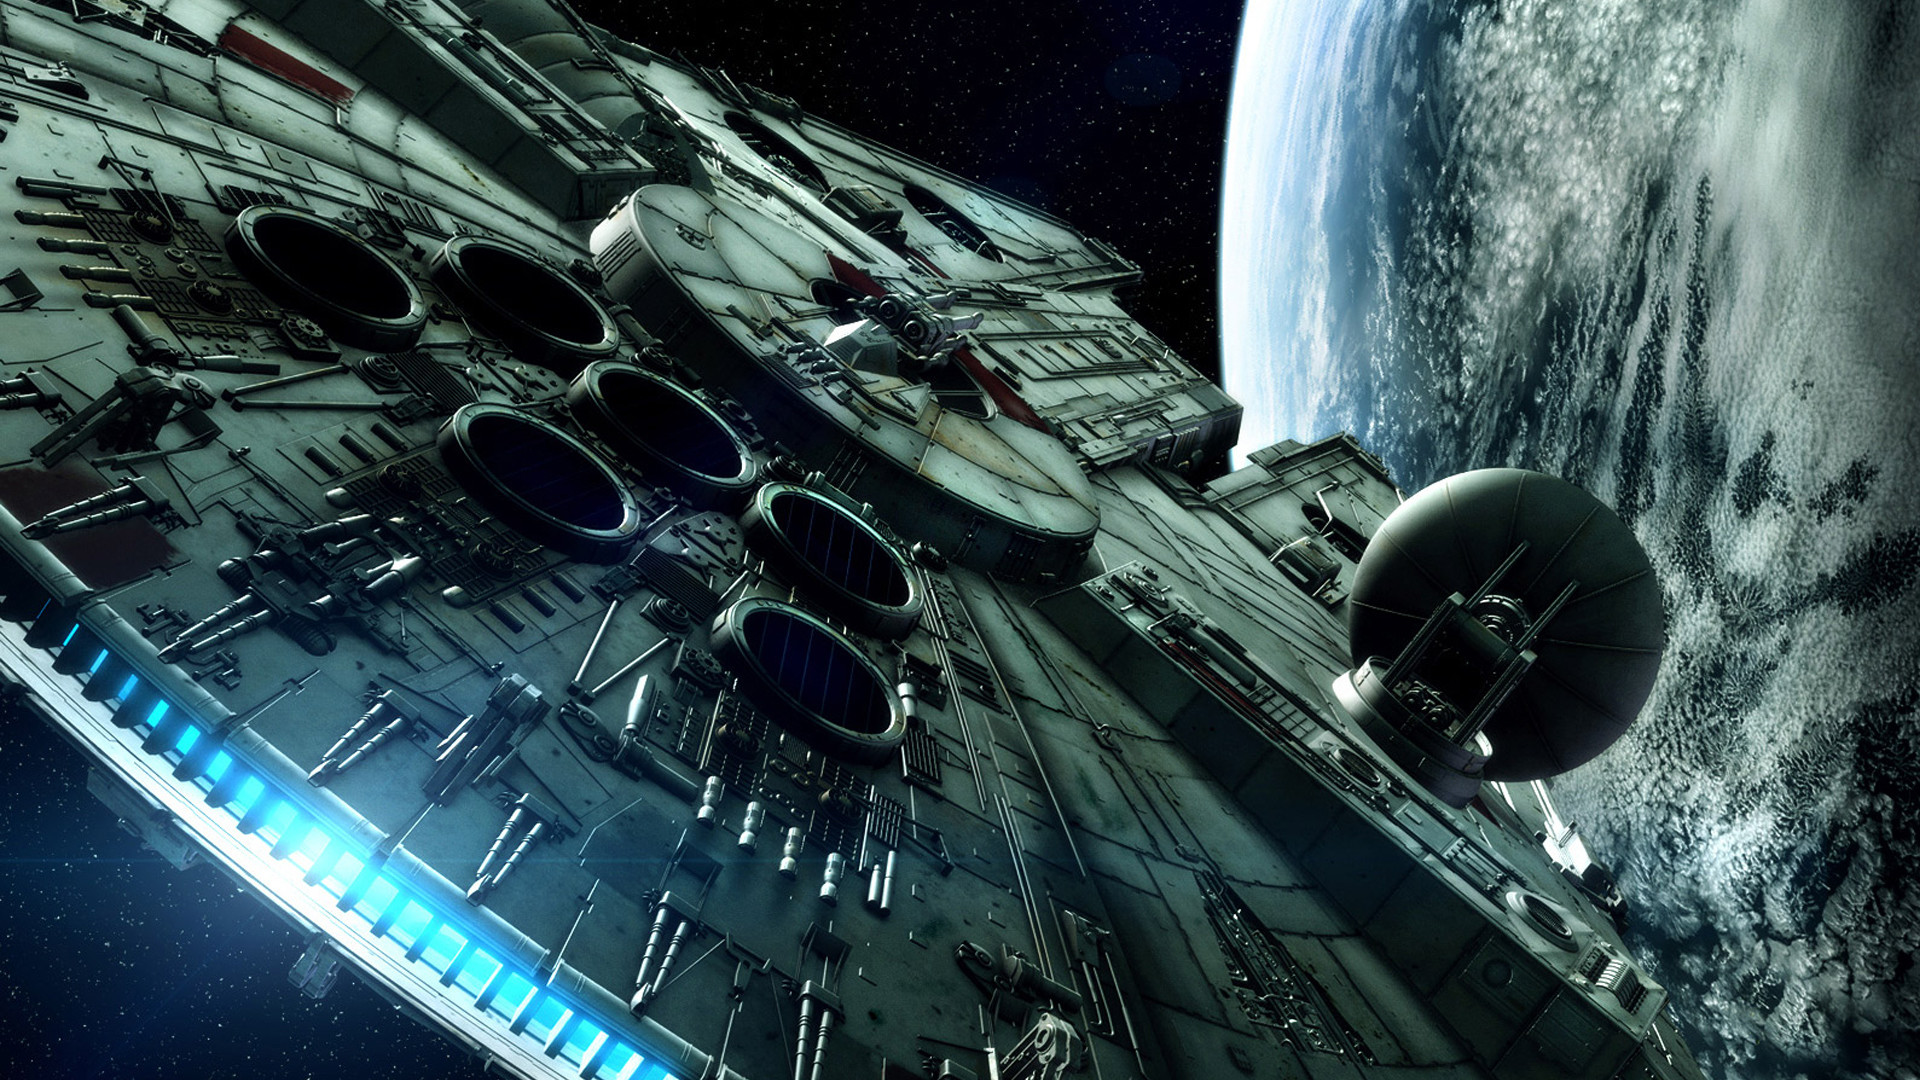 1920x1080 - 1920x1080 HD Wallpapers Star Wars 34